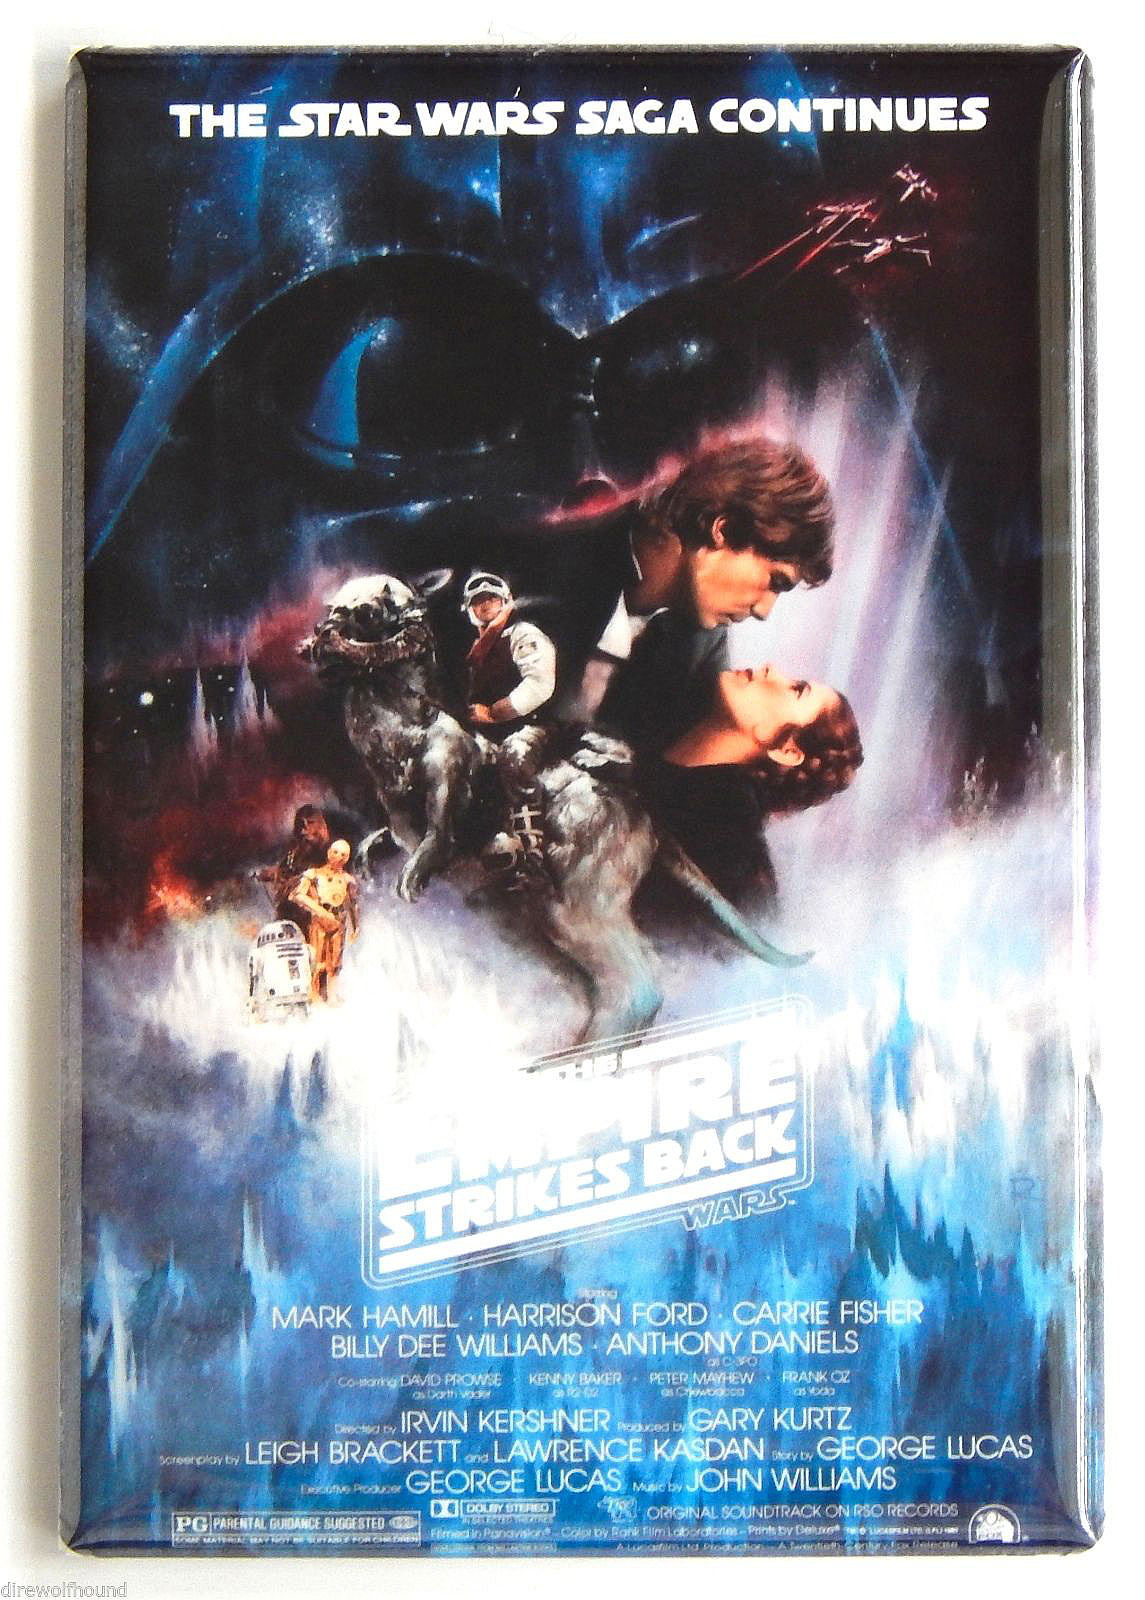 Empire strikes back movie poster magnet 2x3 inches